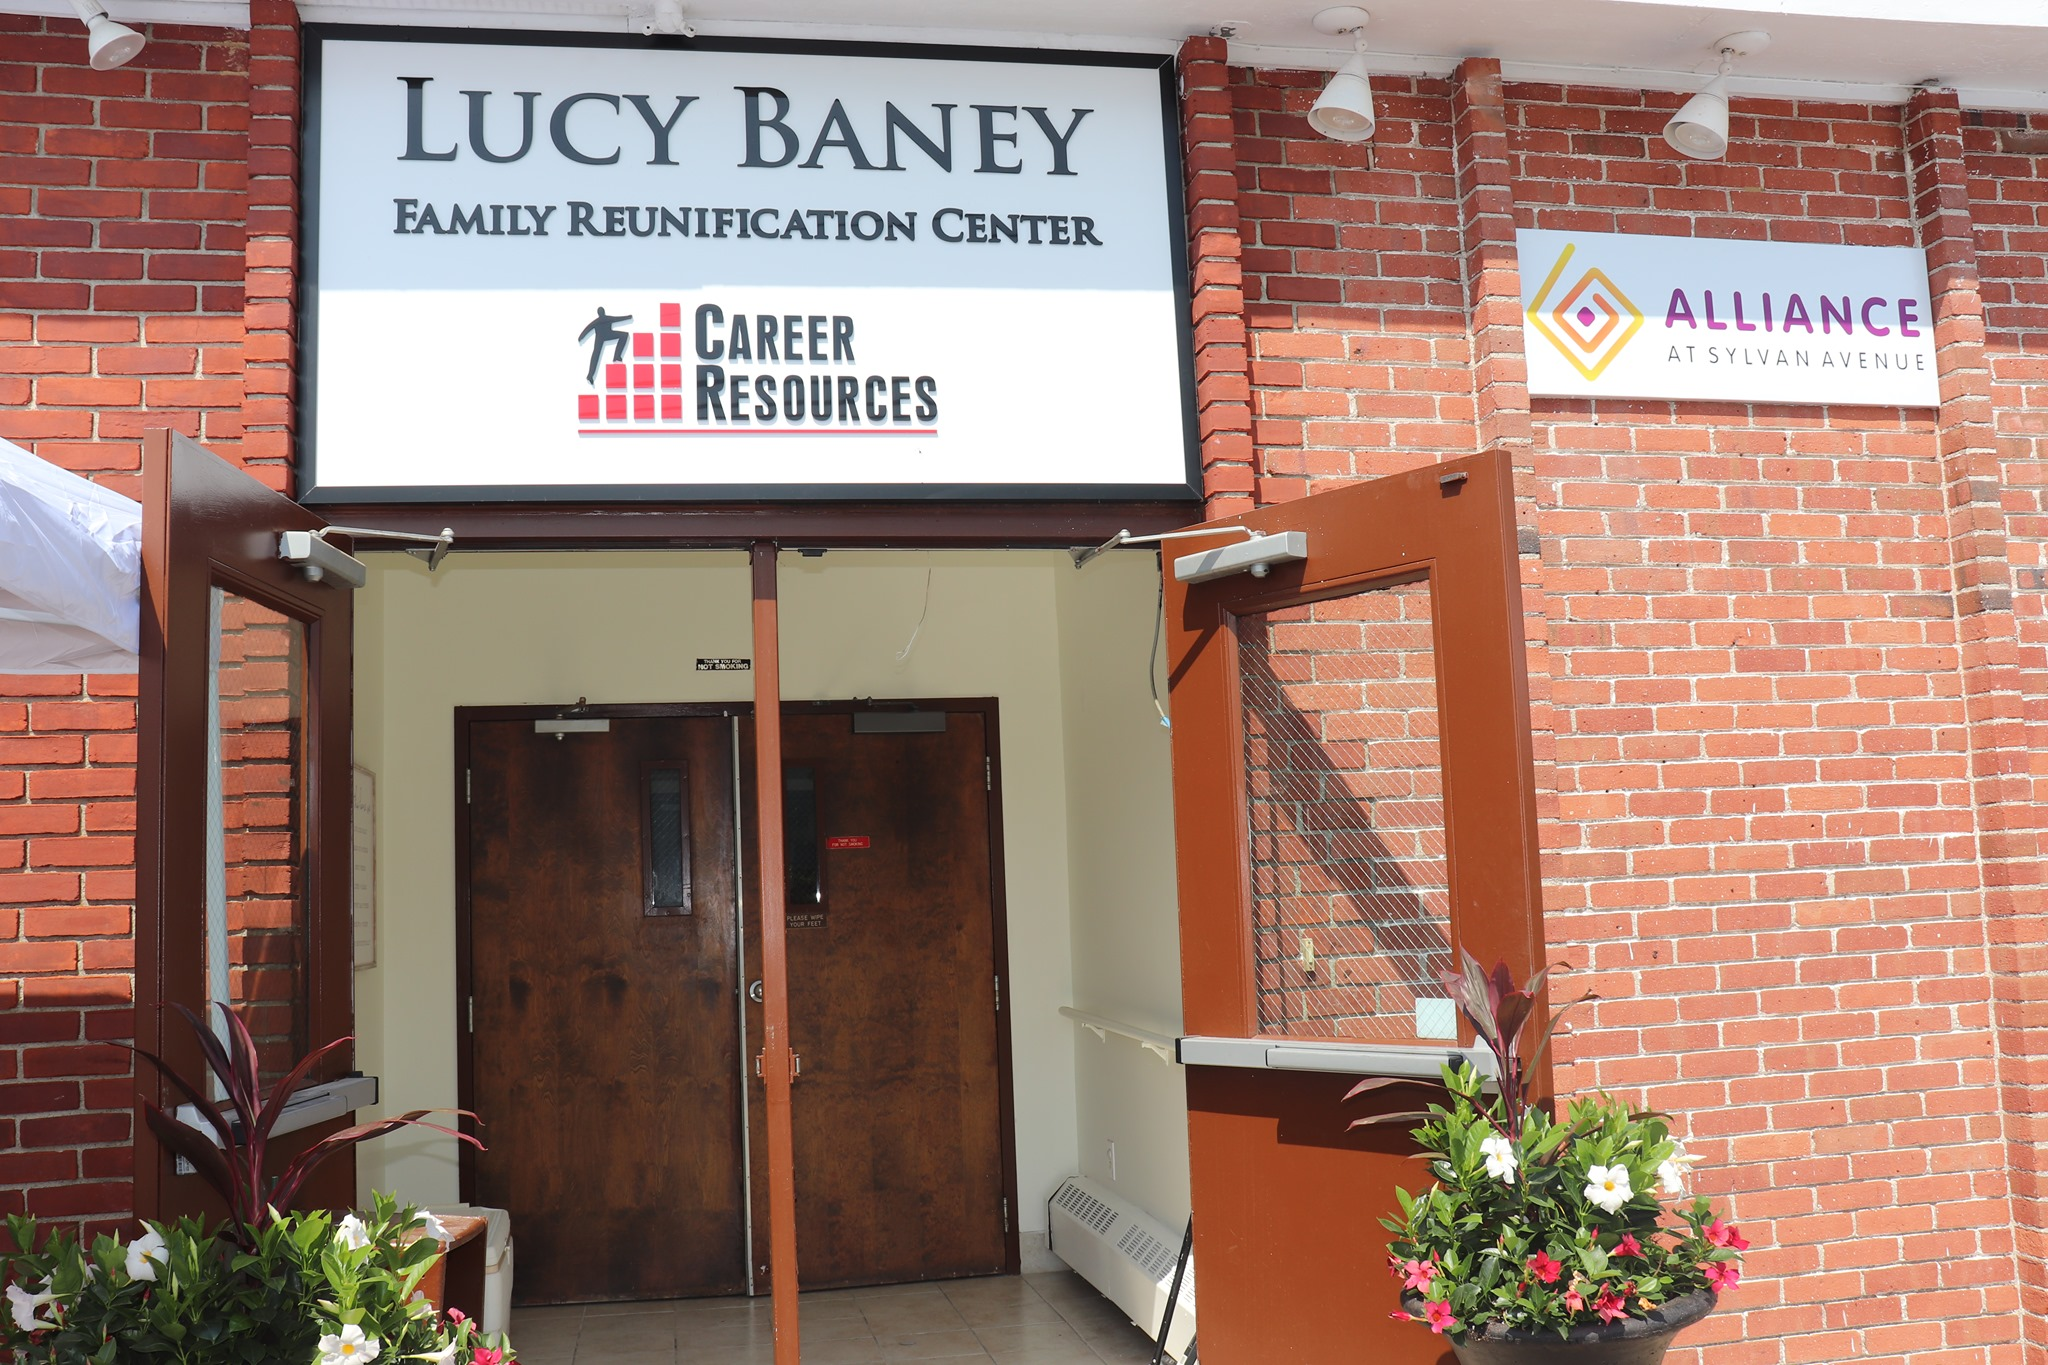 exterior doors of lucy baney family reunification center